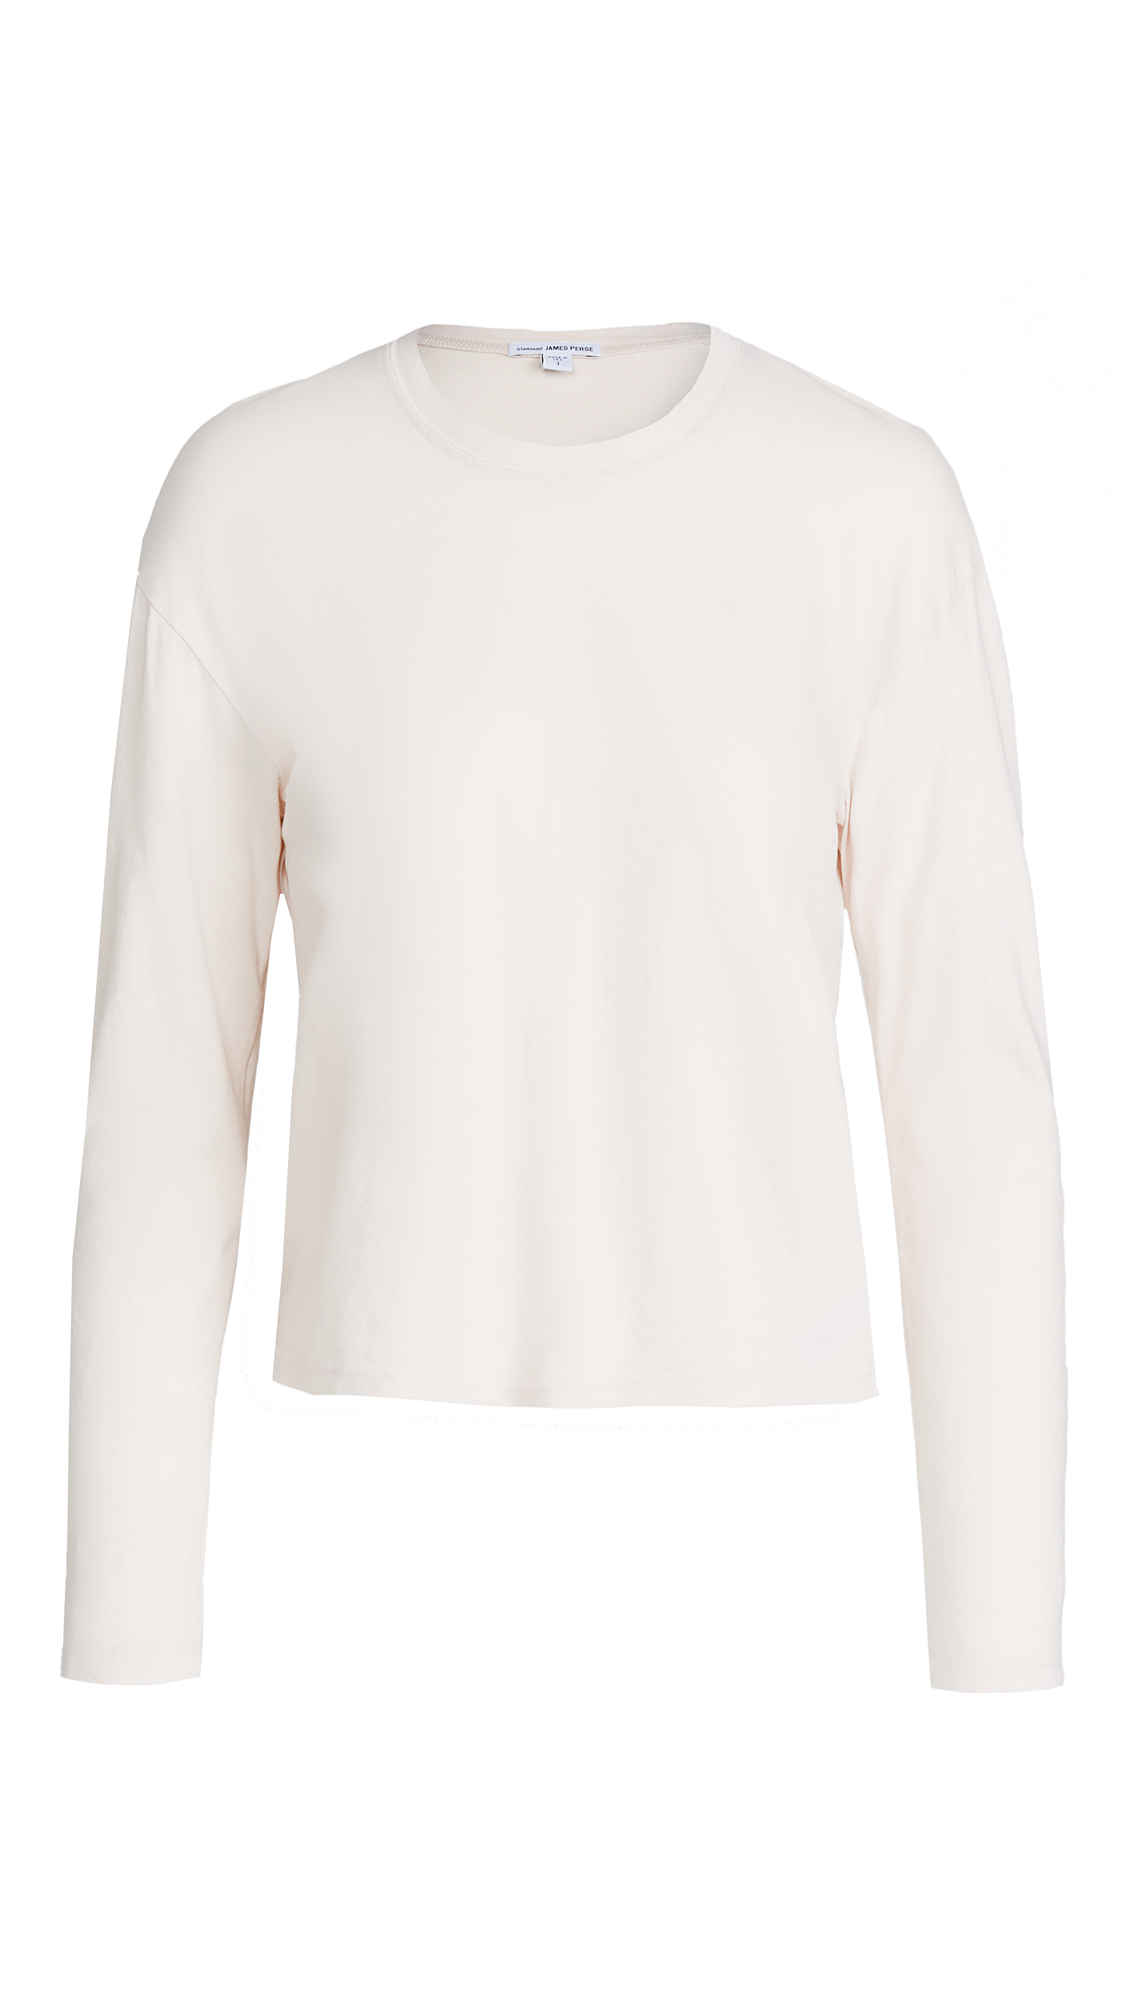 James Perse Long Sleeve Tee